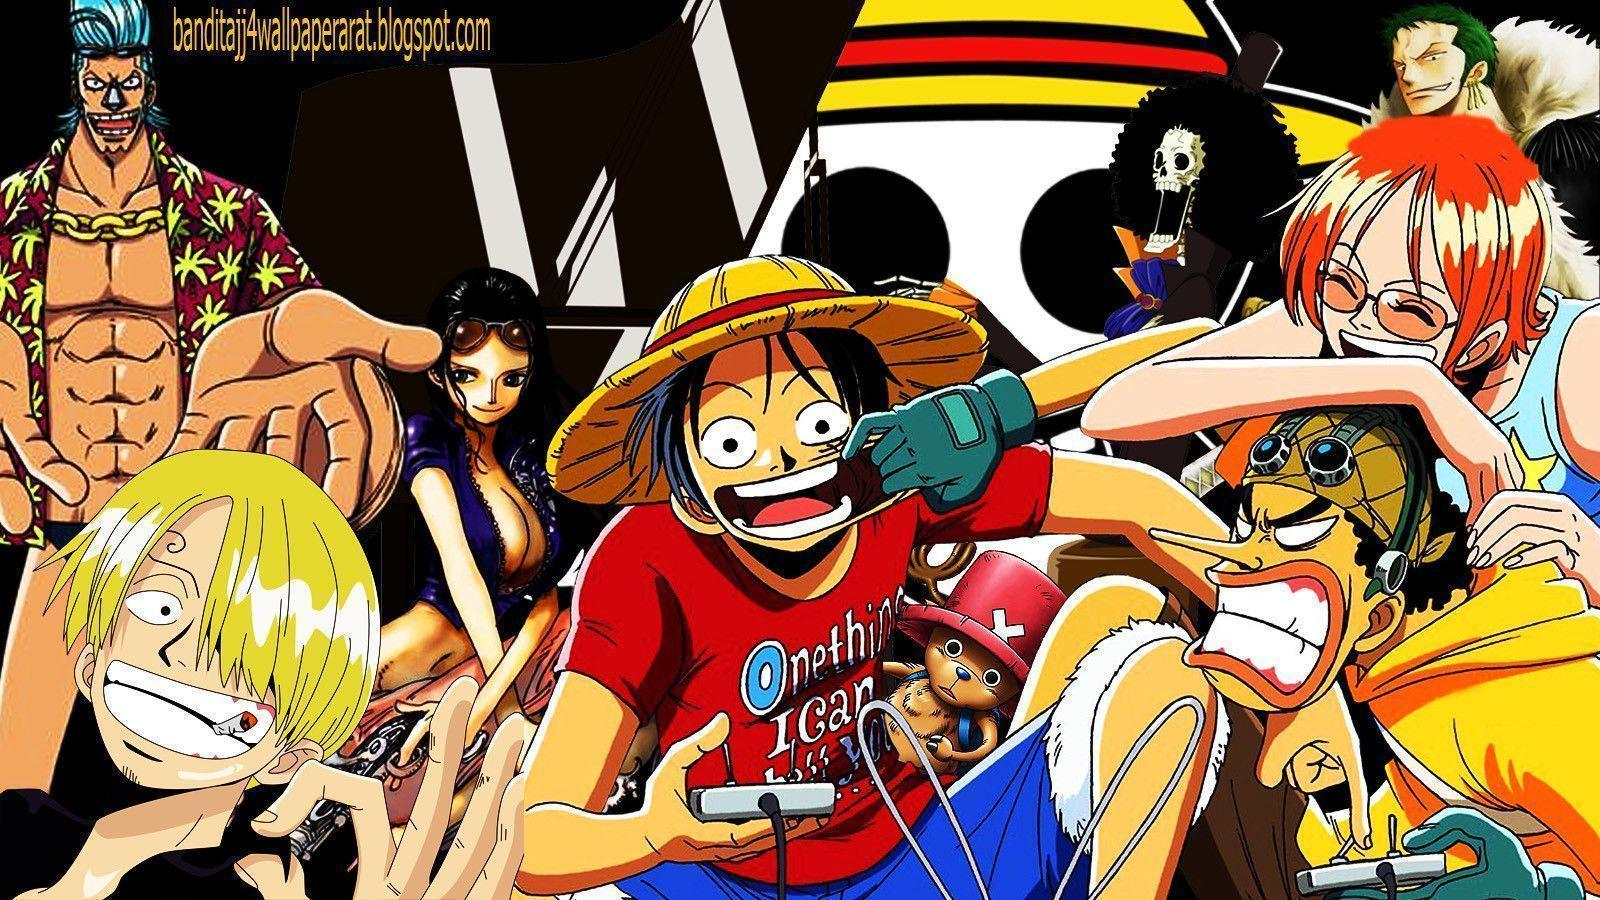 One Piece Wallpapers Wanted - Wallpaper Cave